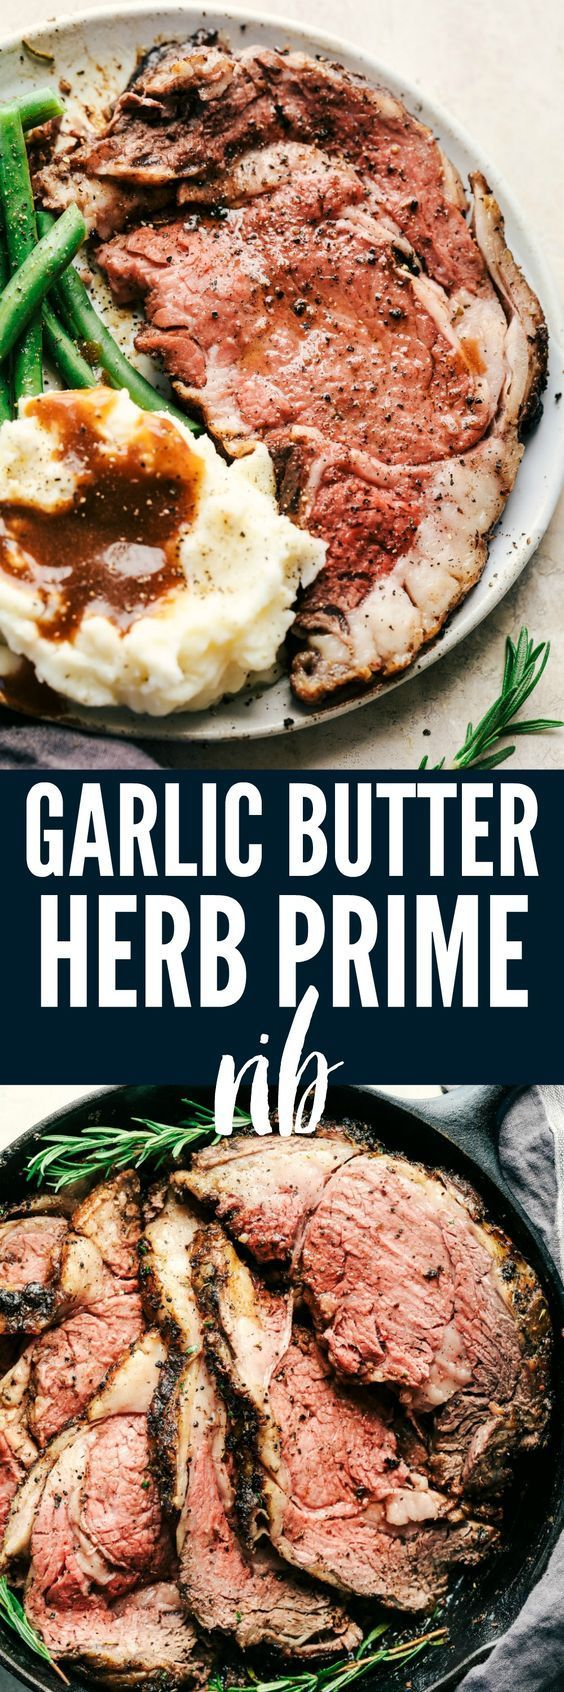 Garlic Butter Herb Prime Rib Is Melt In Your Mouth Tender